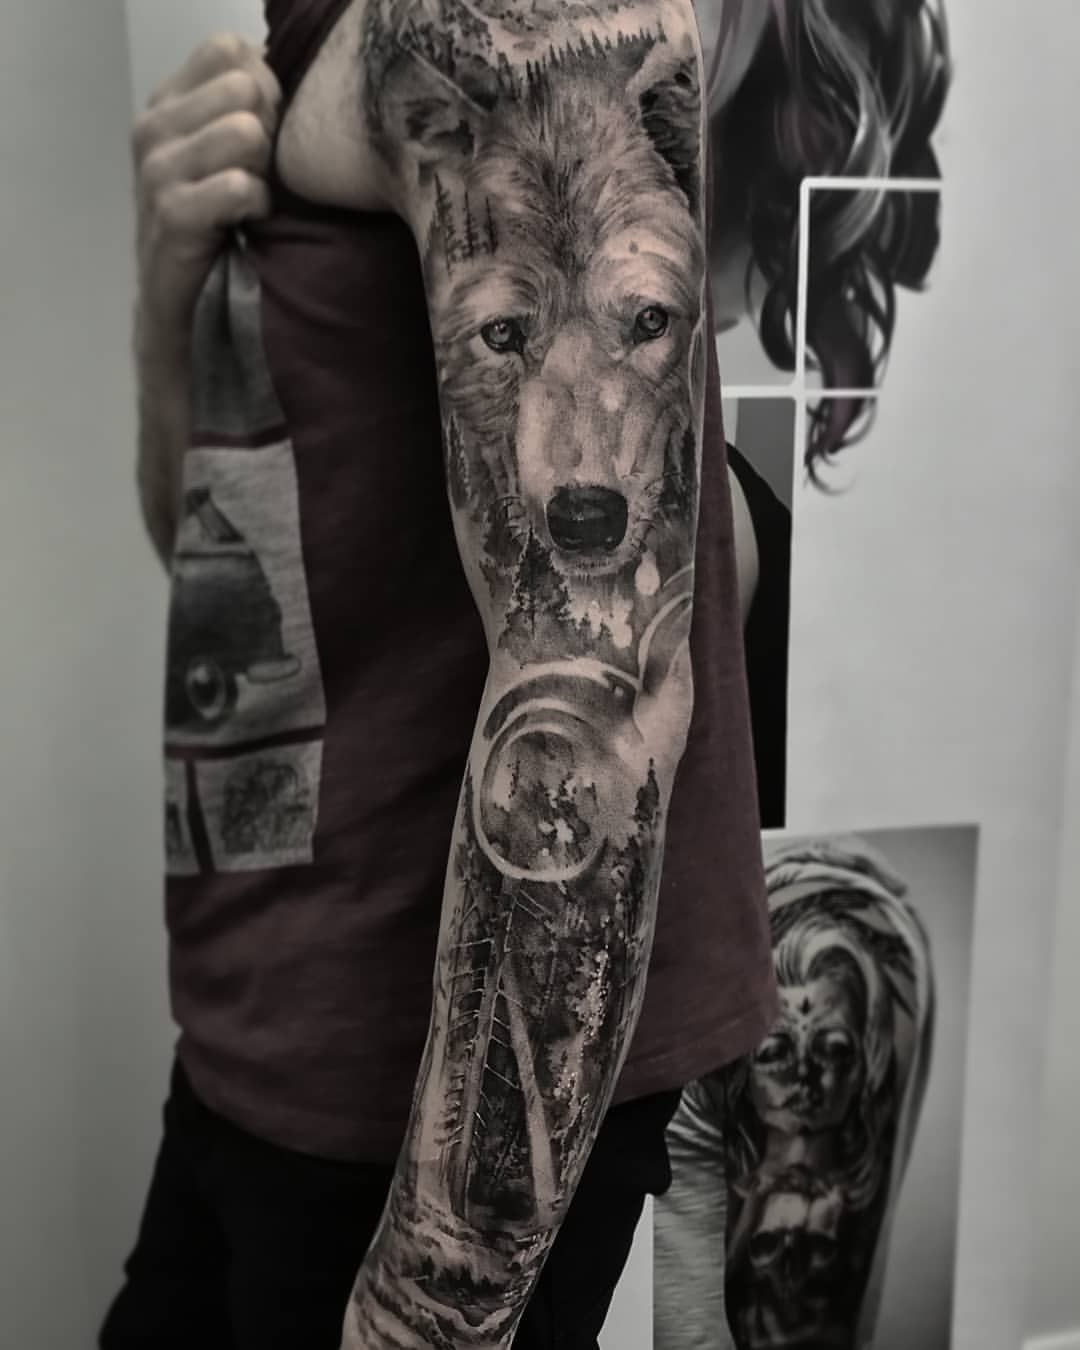 Pin By Angel Arroyo On Favorite S White Wolf Tattoo Tattoo Artists Forest Tattoos